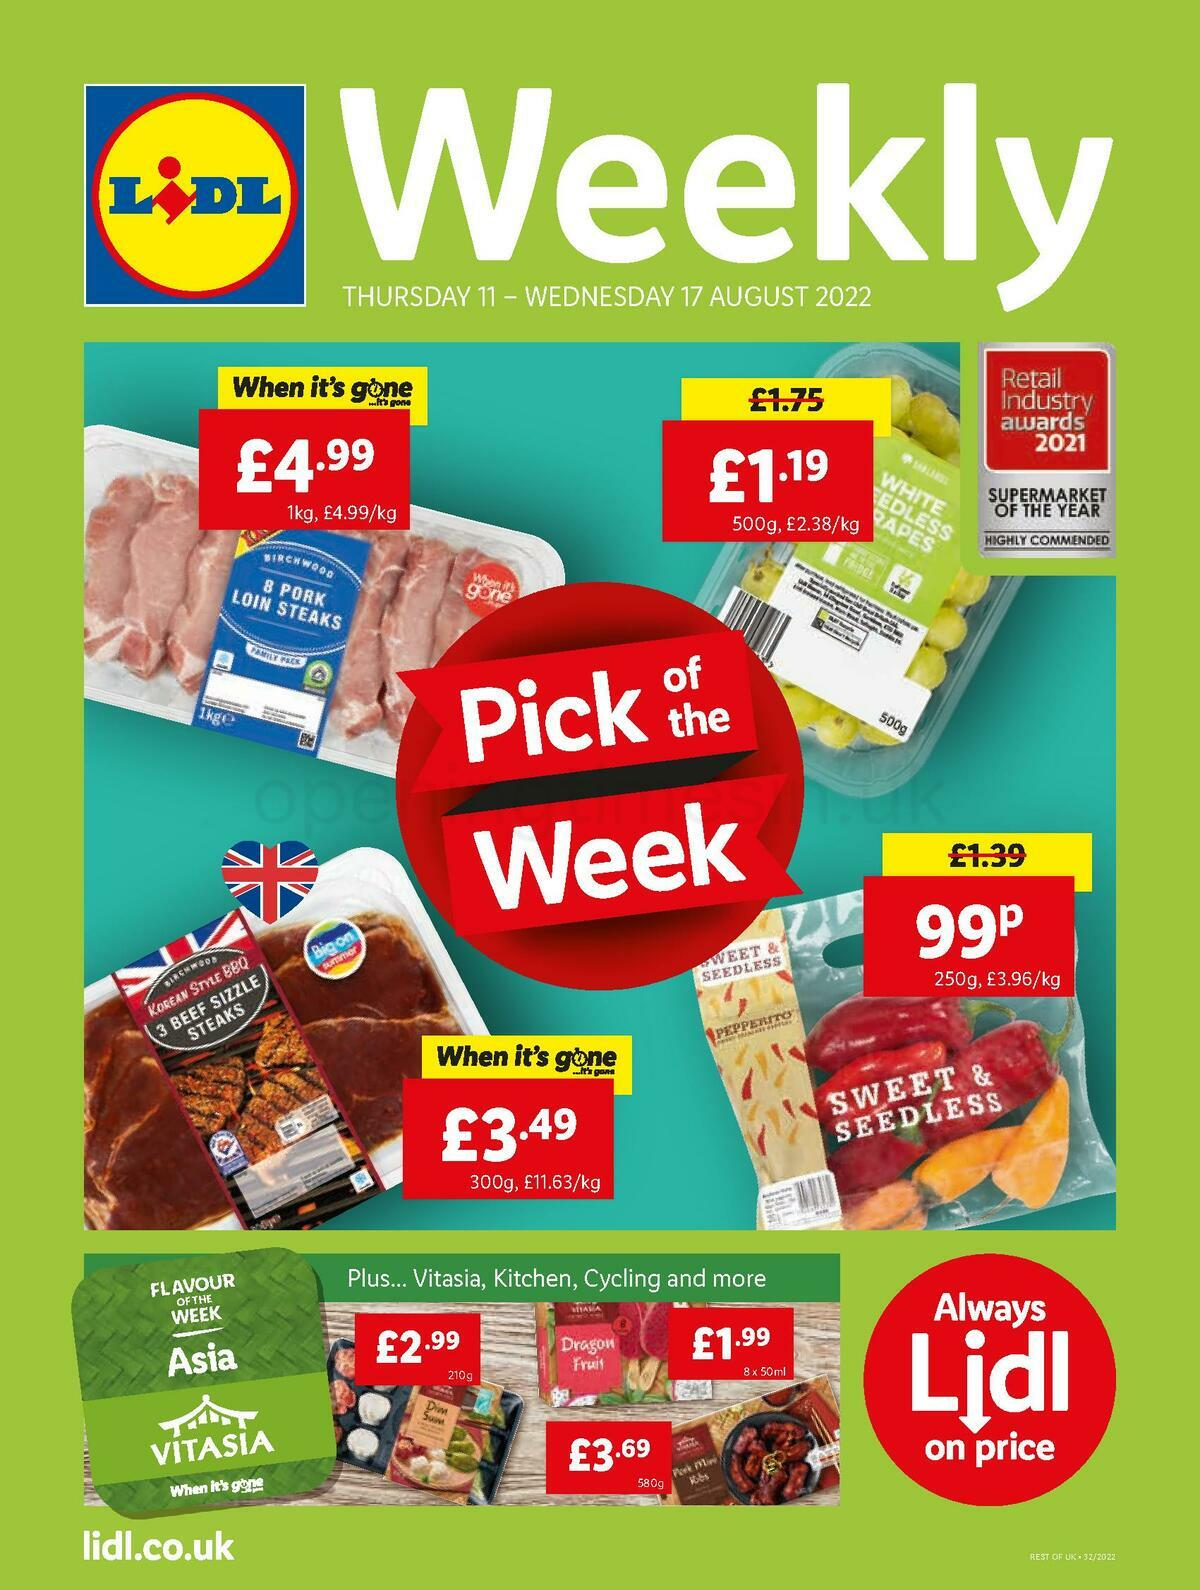 LIDL Offers & Special Buys